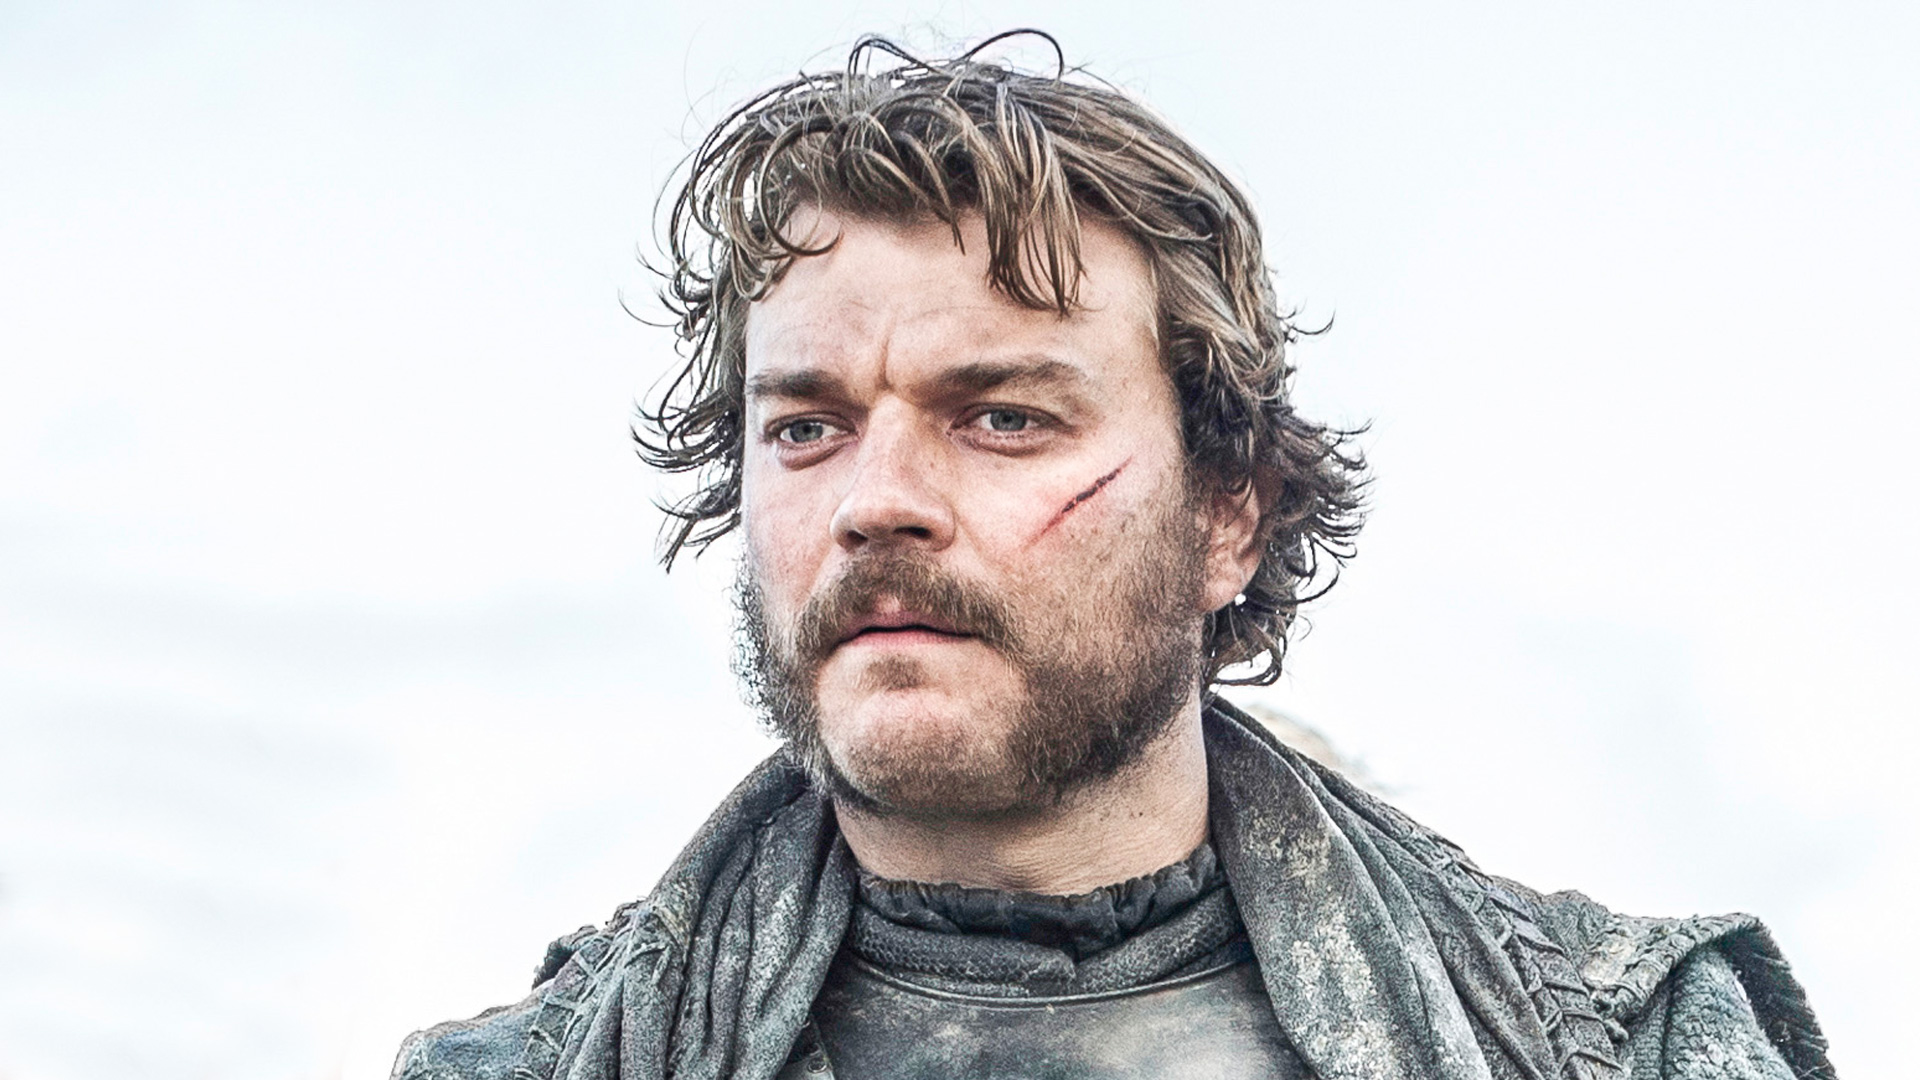 Game Of Thrones villain Euron Greyjoy